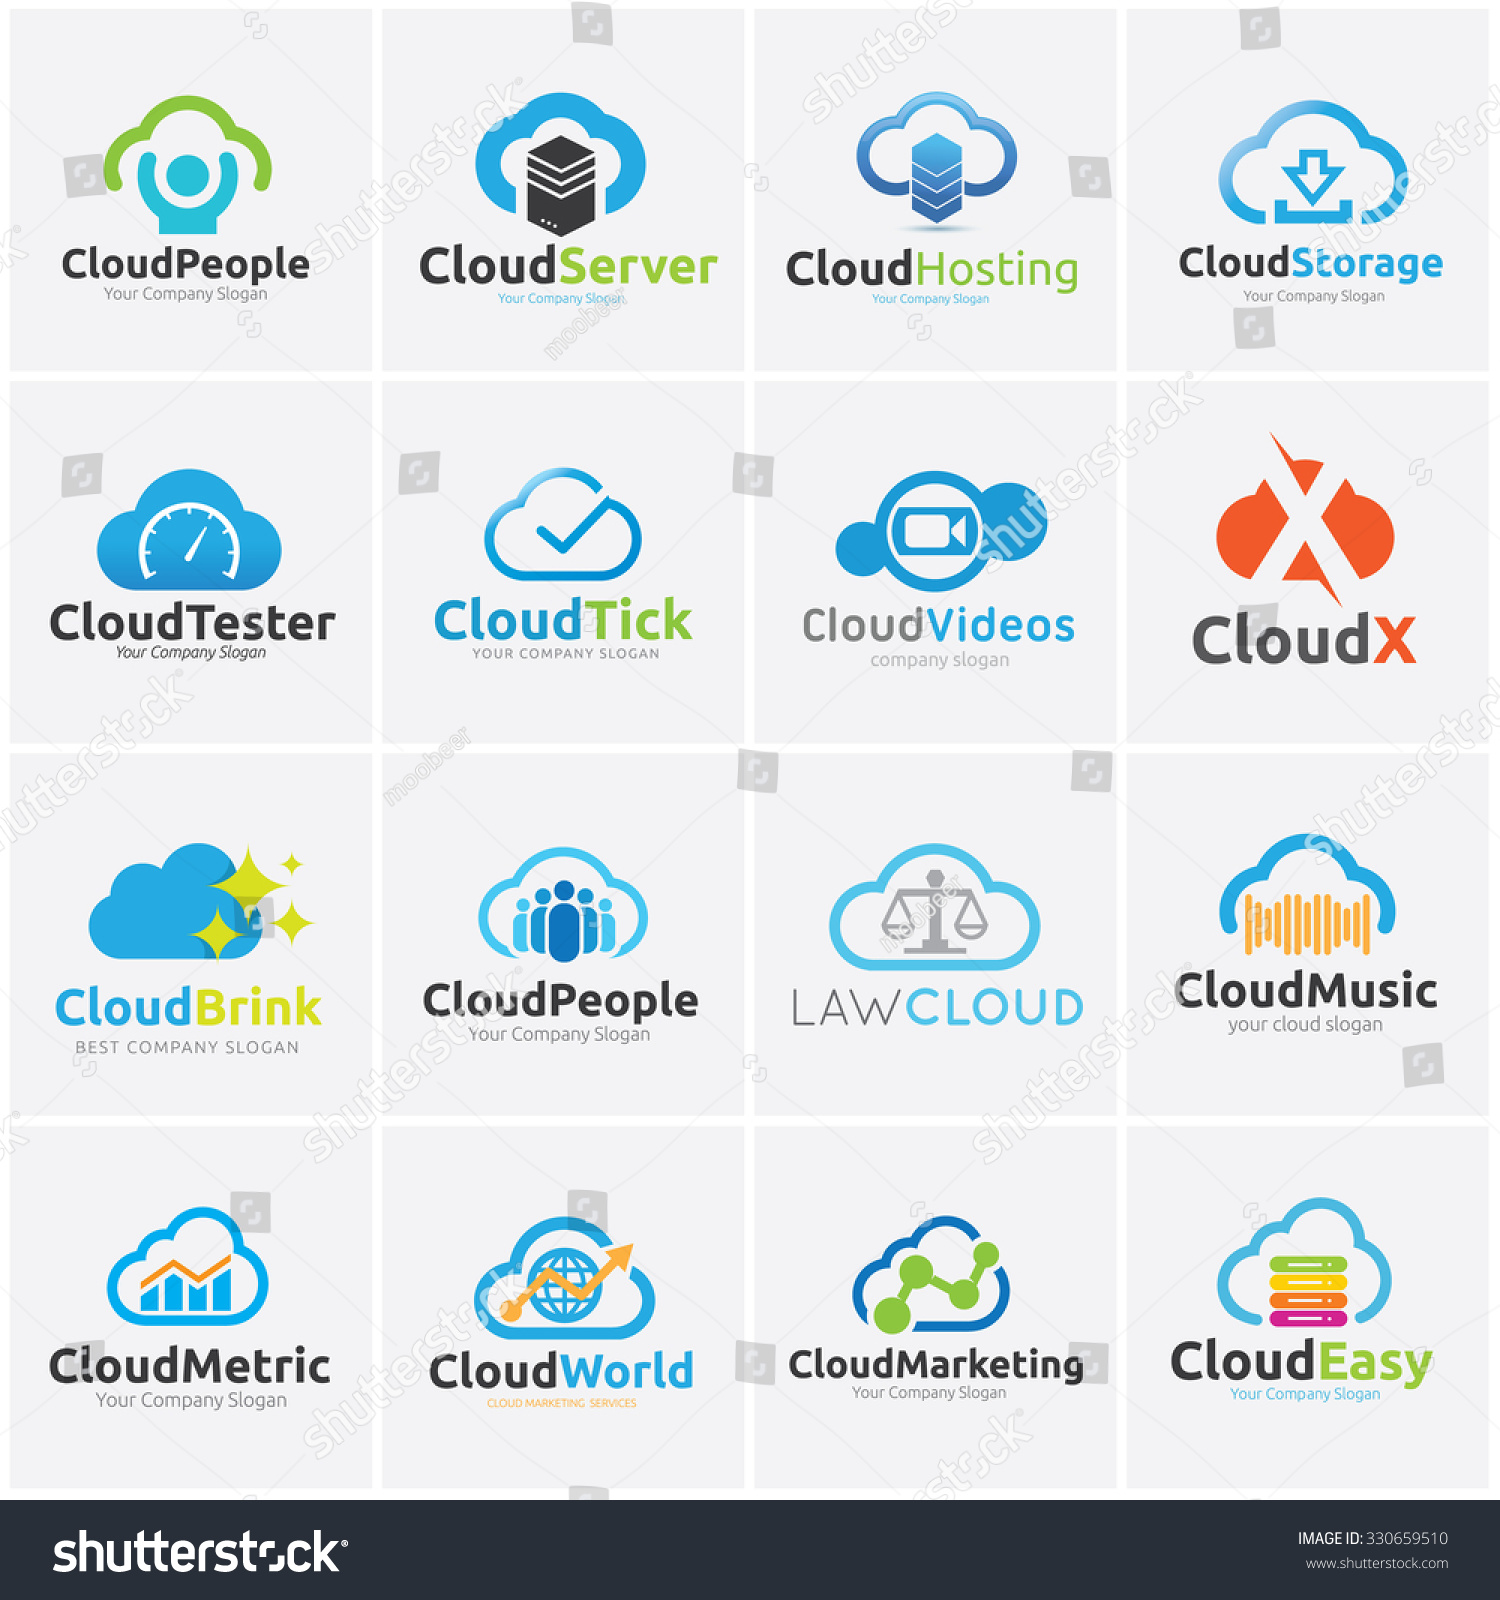 royalty free cloud logo collection cloud logo law 330659510 stock